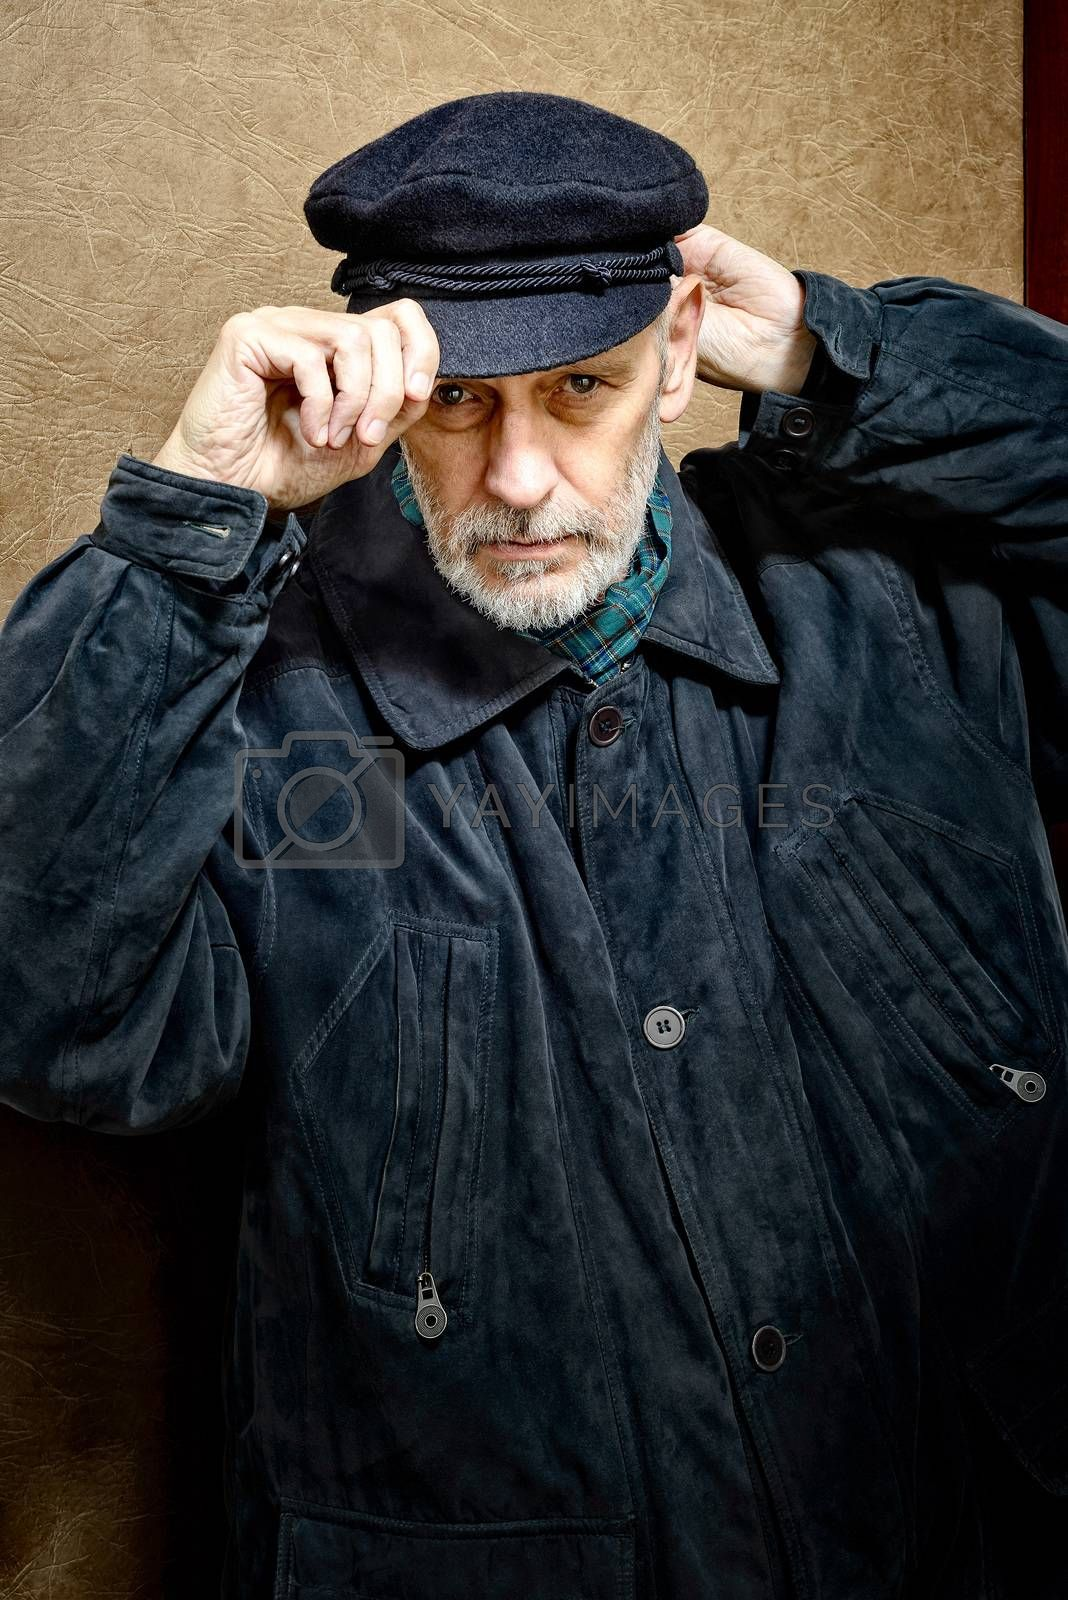 Portrait of a mature man with a white beard adjusting his cap on the head. He could be a sailor, a worker, a docker, or even a gangster or a thug. He has a penetrating gaze.